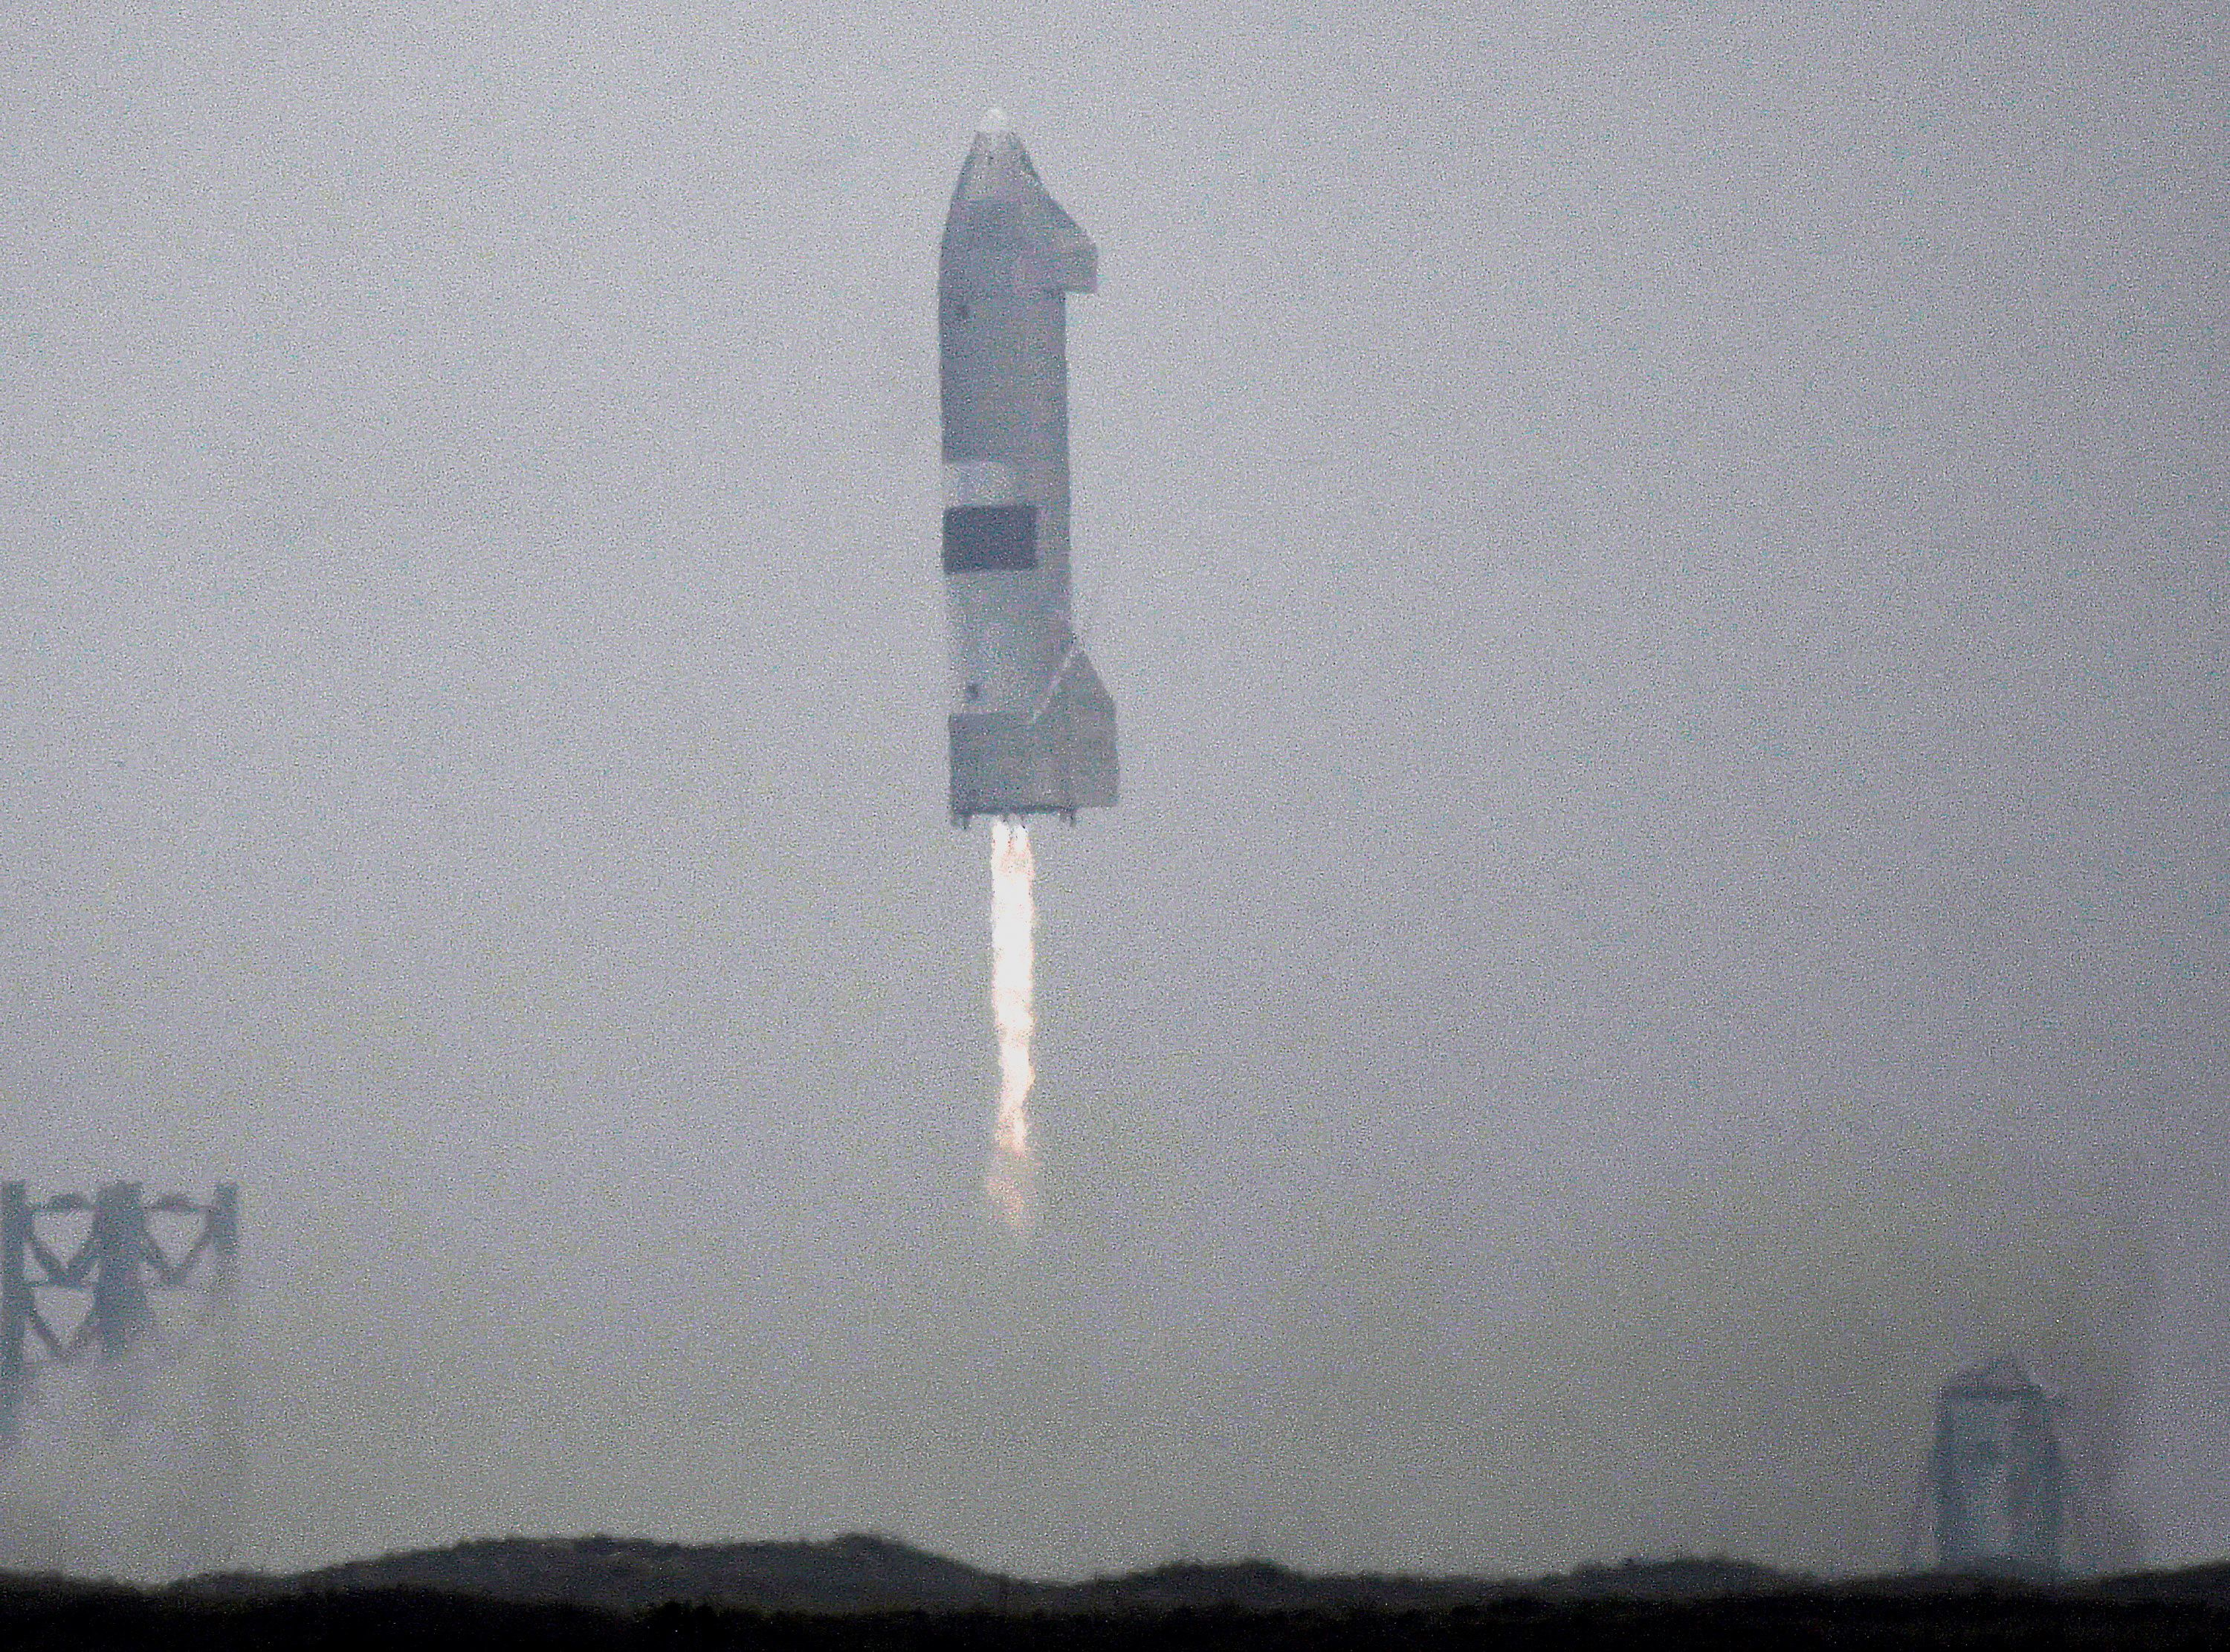 SpaceX SN15 starship prototype comes in for a successful landing for the first time from the company's starship facility in Boca Chica, Texas, U.S. May 5, 2021. REUTERS/Gene Blevins